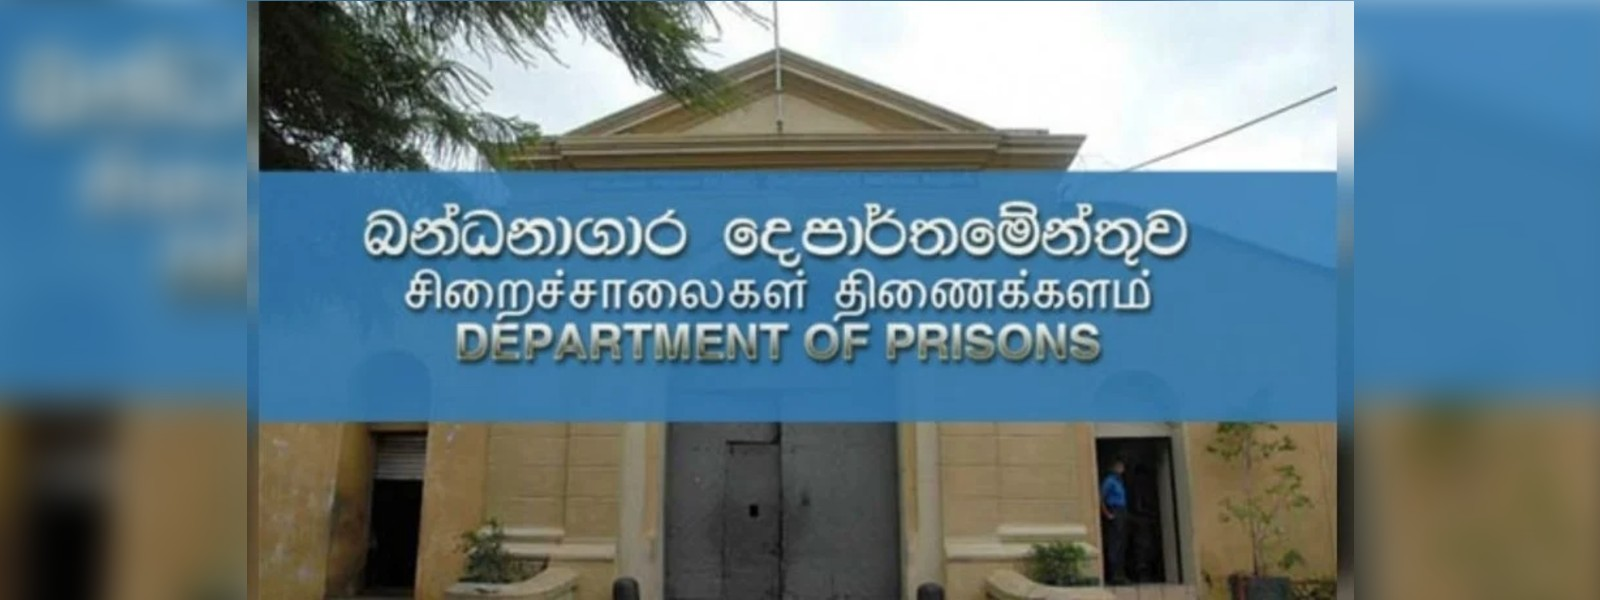 19 mobile phones found buried in the Colombo Remand Prison grounds